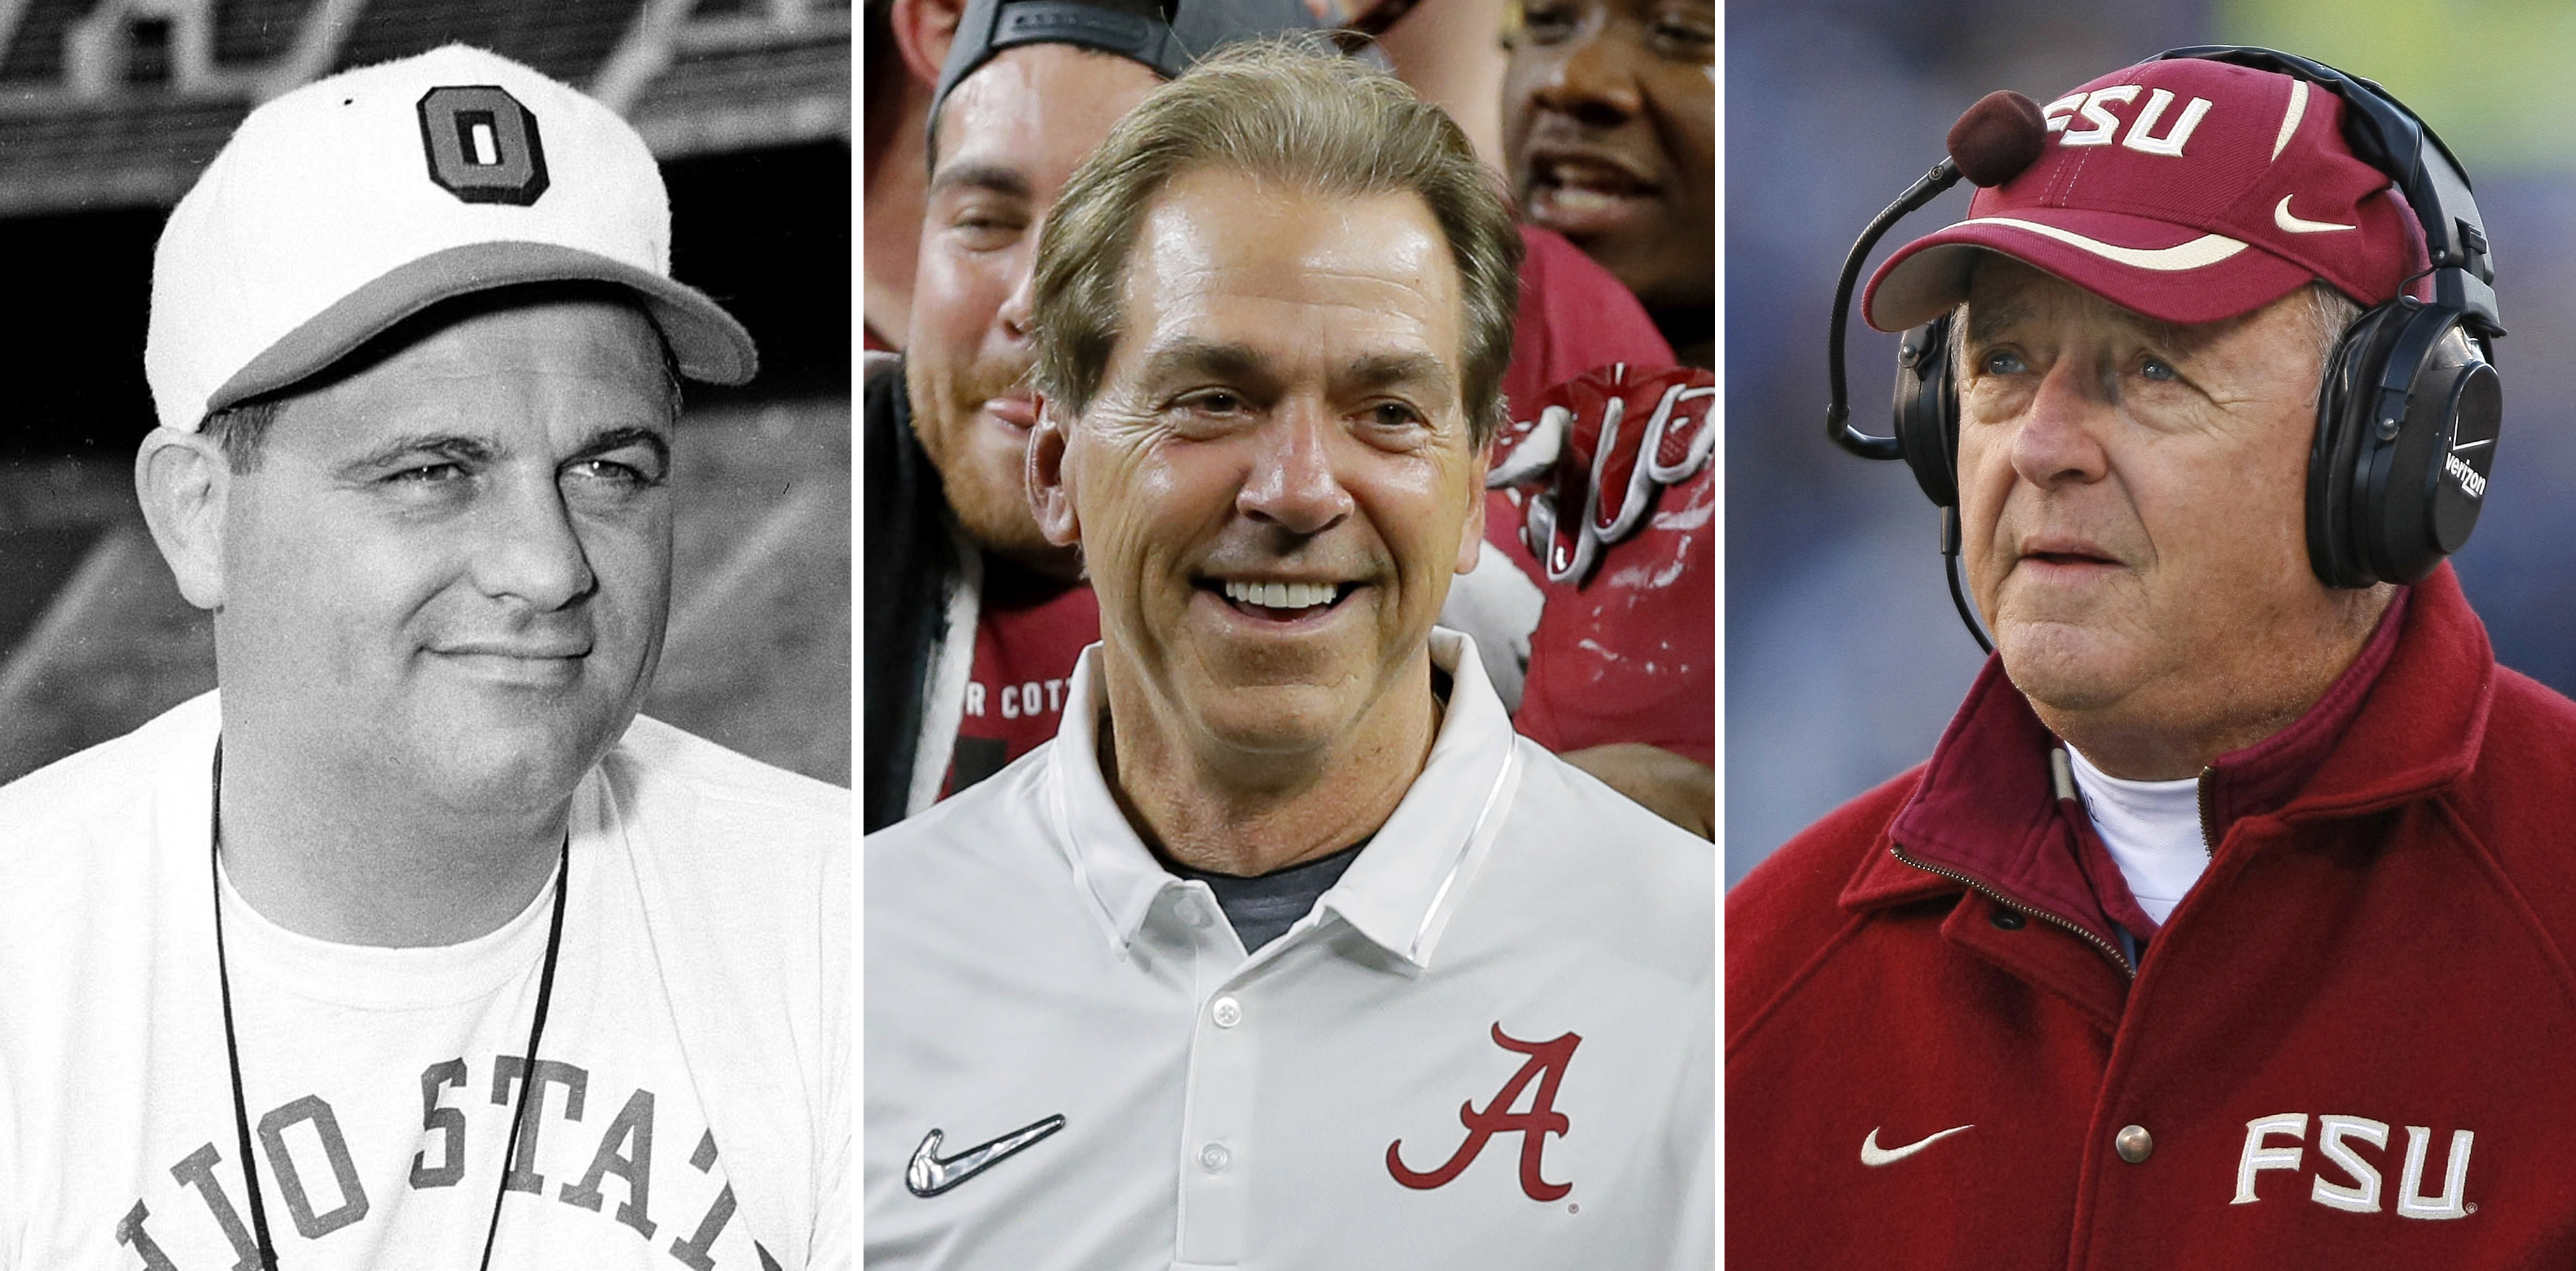 FILE - From left are file photos showing Ohio State football coach Woody Hayes, in 1951, Alabama coach Nick Saban, in 2015, and Florida State coach Bobby Bowden, in 2007. Nick Saban is on the verge of another milestone victory, another number that gives a